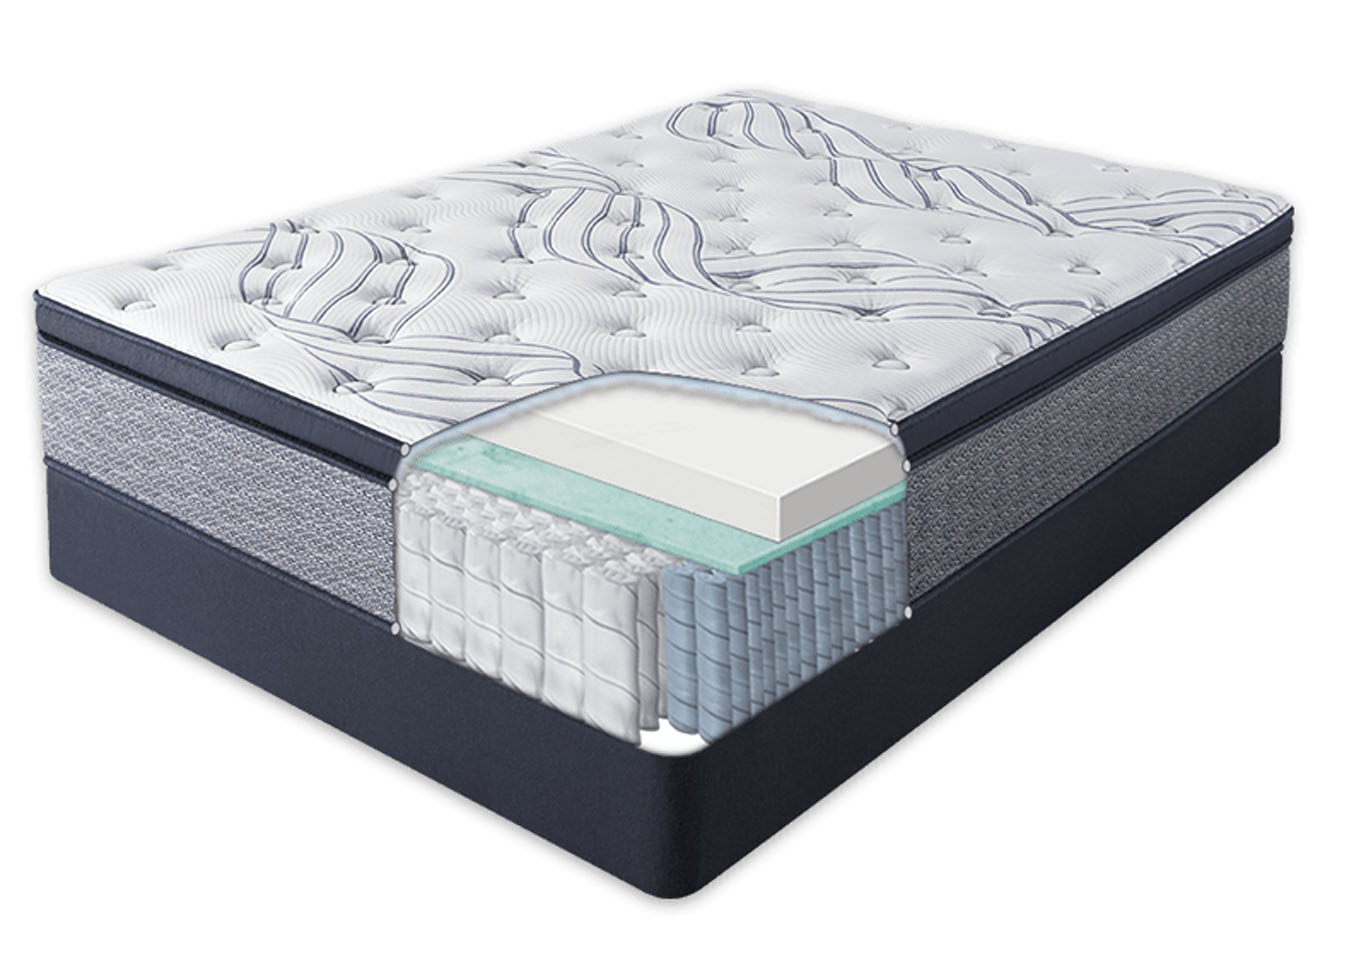 Serta Sleep Retreat Park City Pillow Top Mattress and Foundation Twin XL (Extra Long),Instore